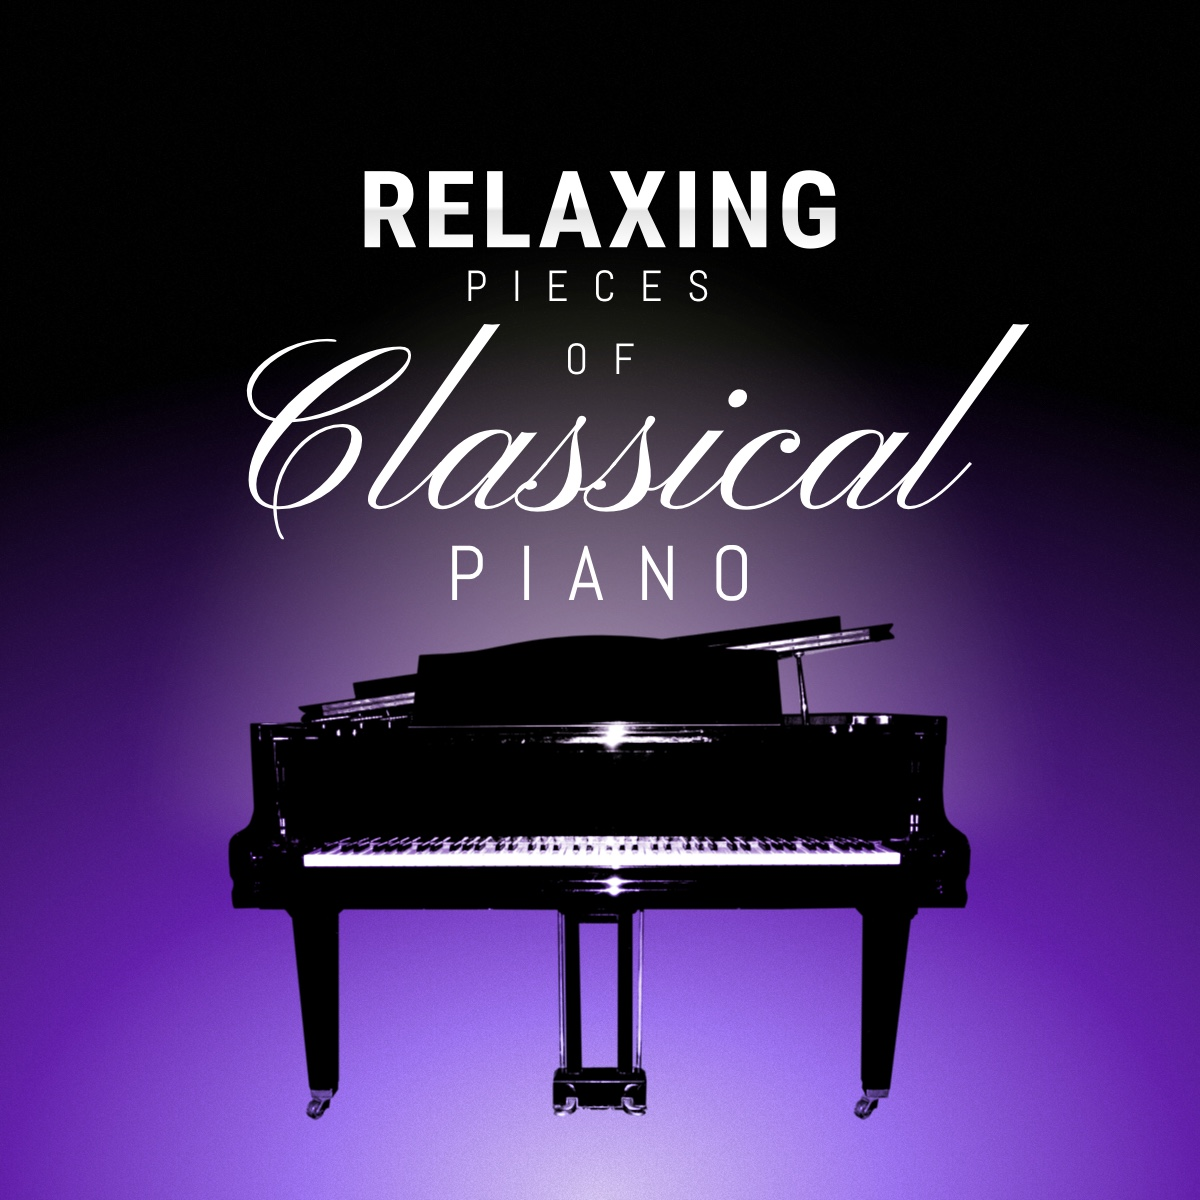 Relaxing pieces of classical piano